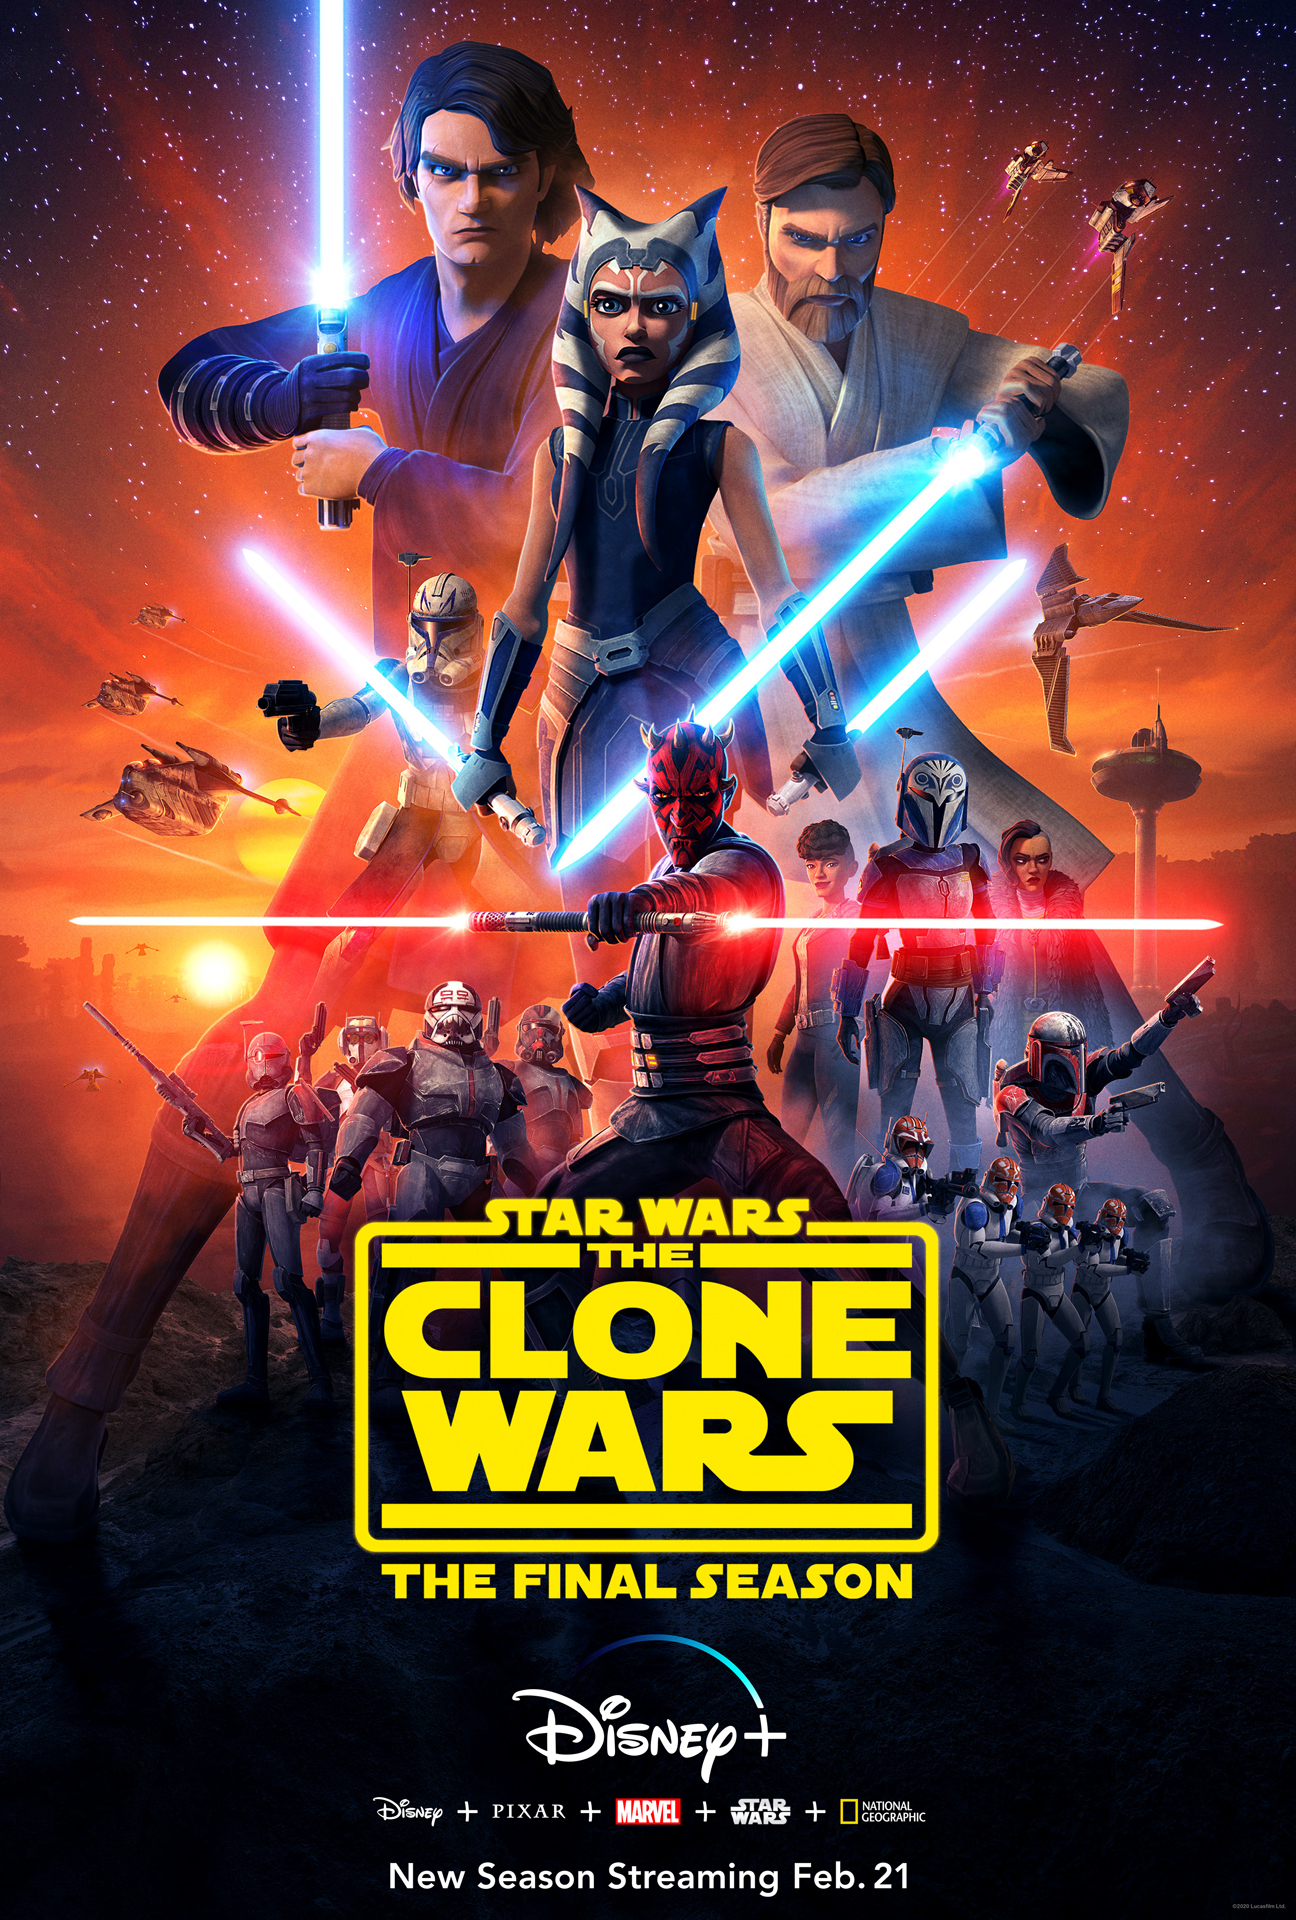 Star Wars: The Clone Wars Returns with New Episodes